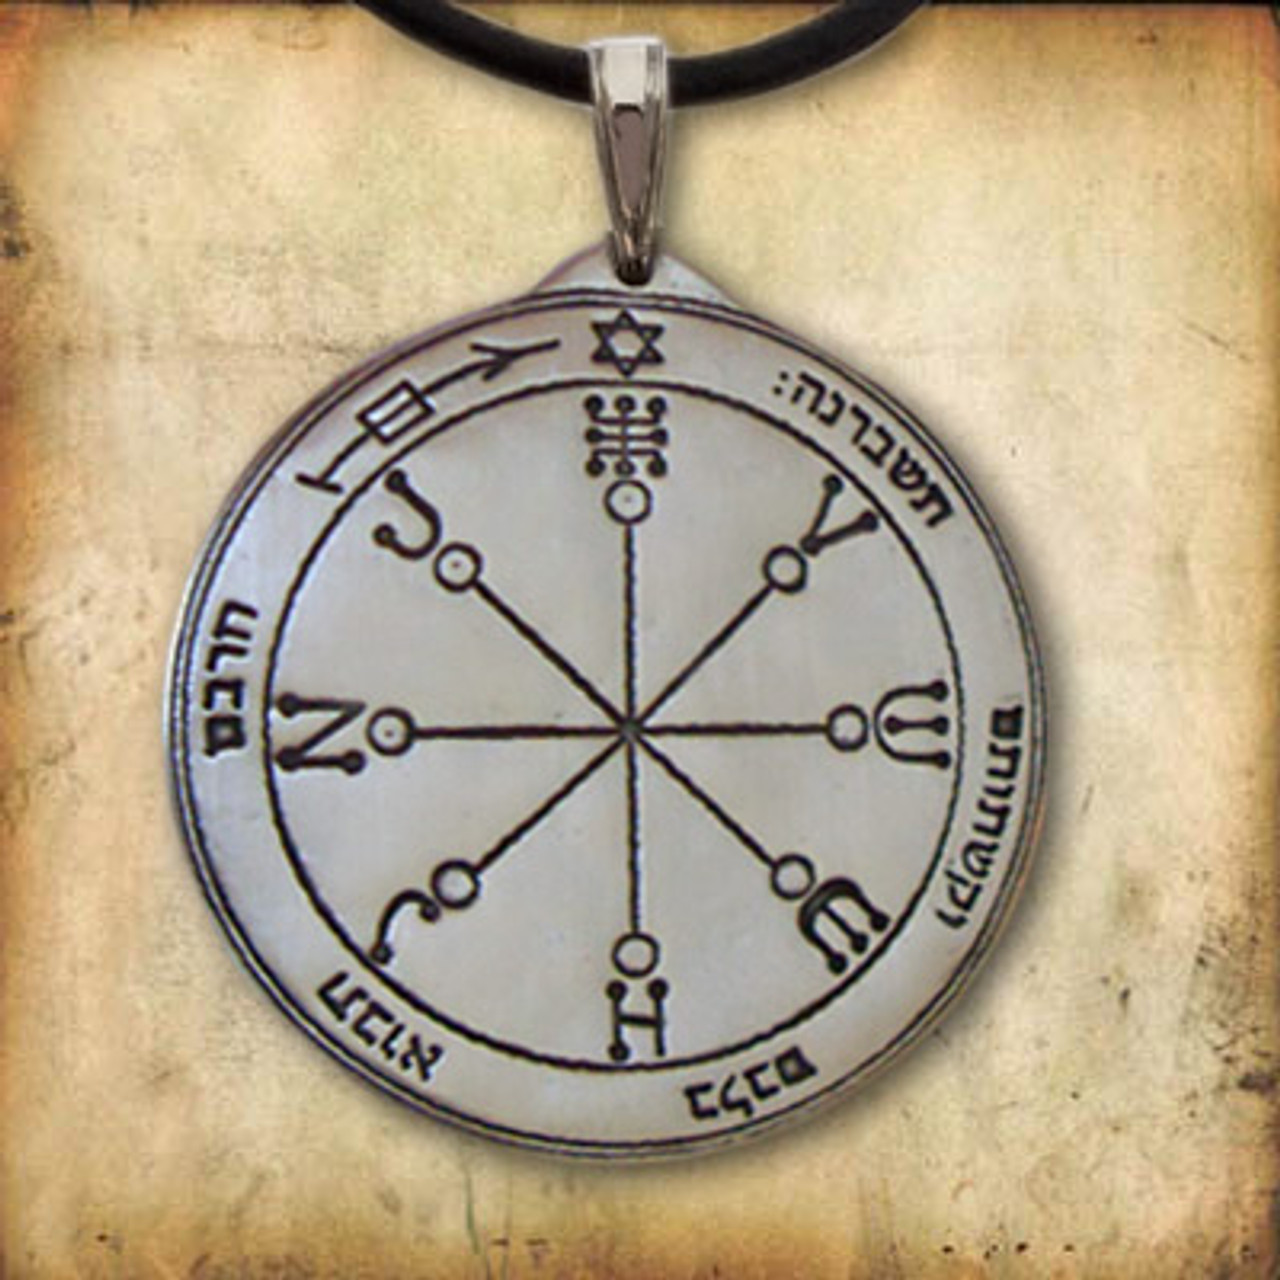 King Solomon Seal 13. For Protection Against Physical Harm. The Sixth Pentacle of Mars.